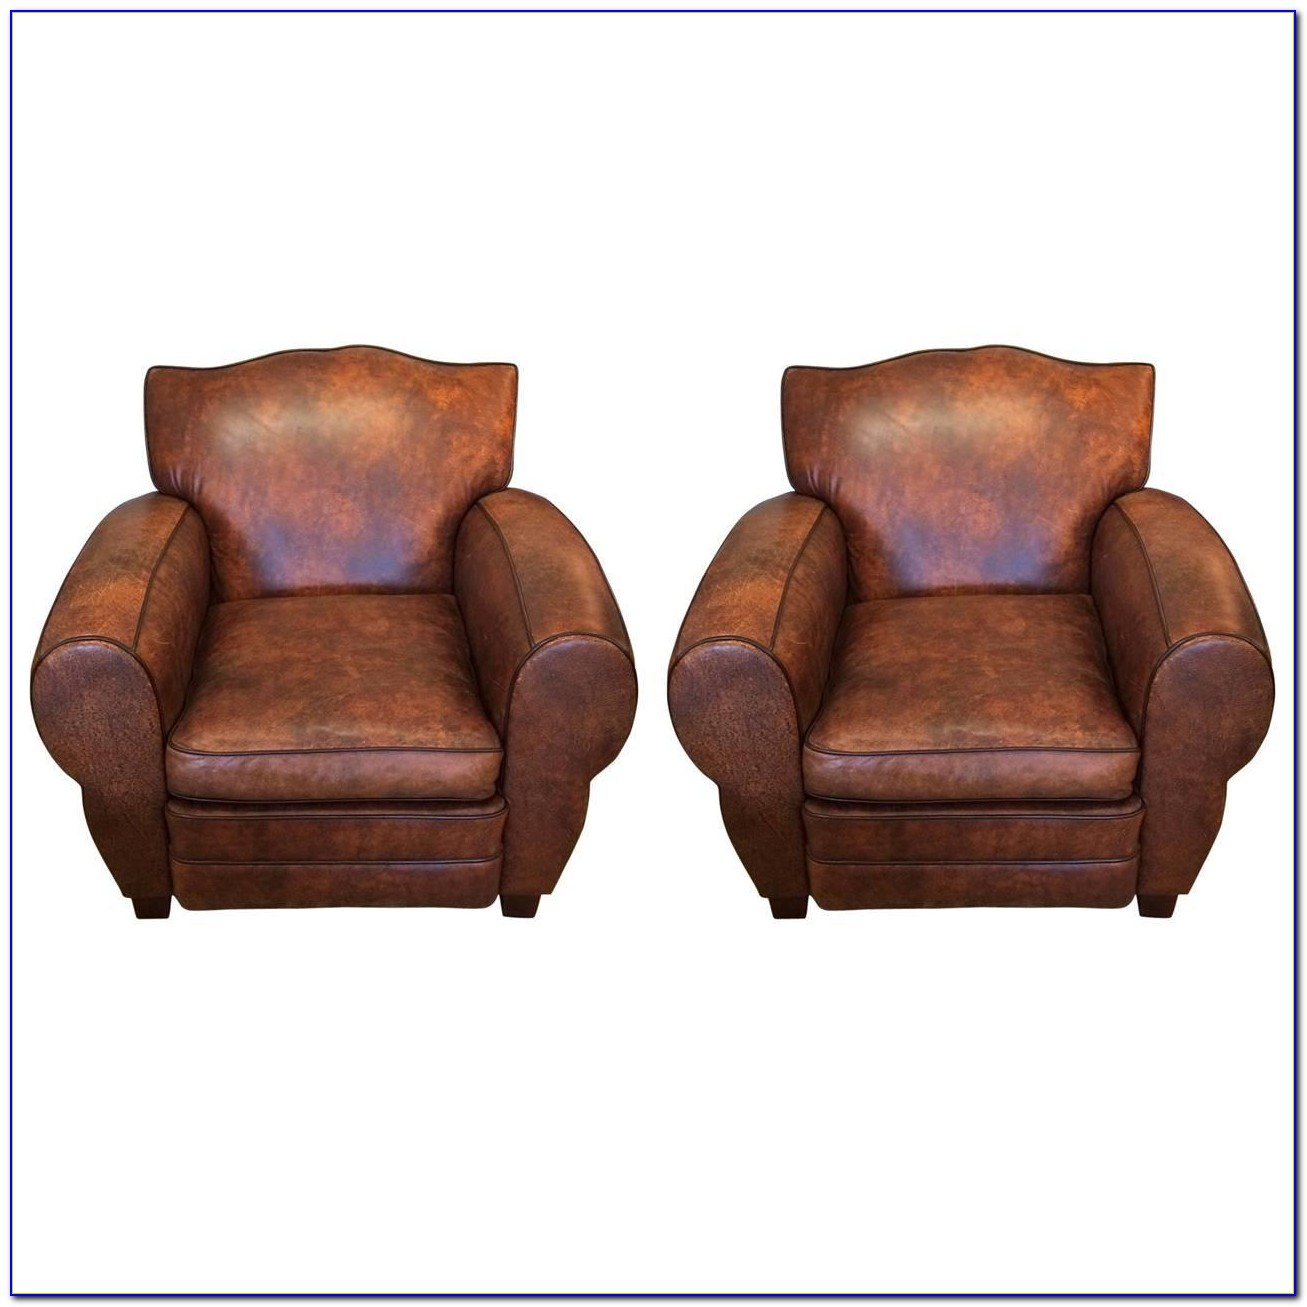 Tufted Brown Leather Club Chair